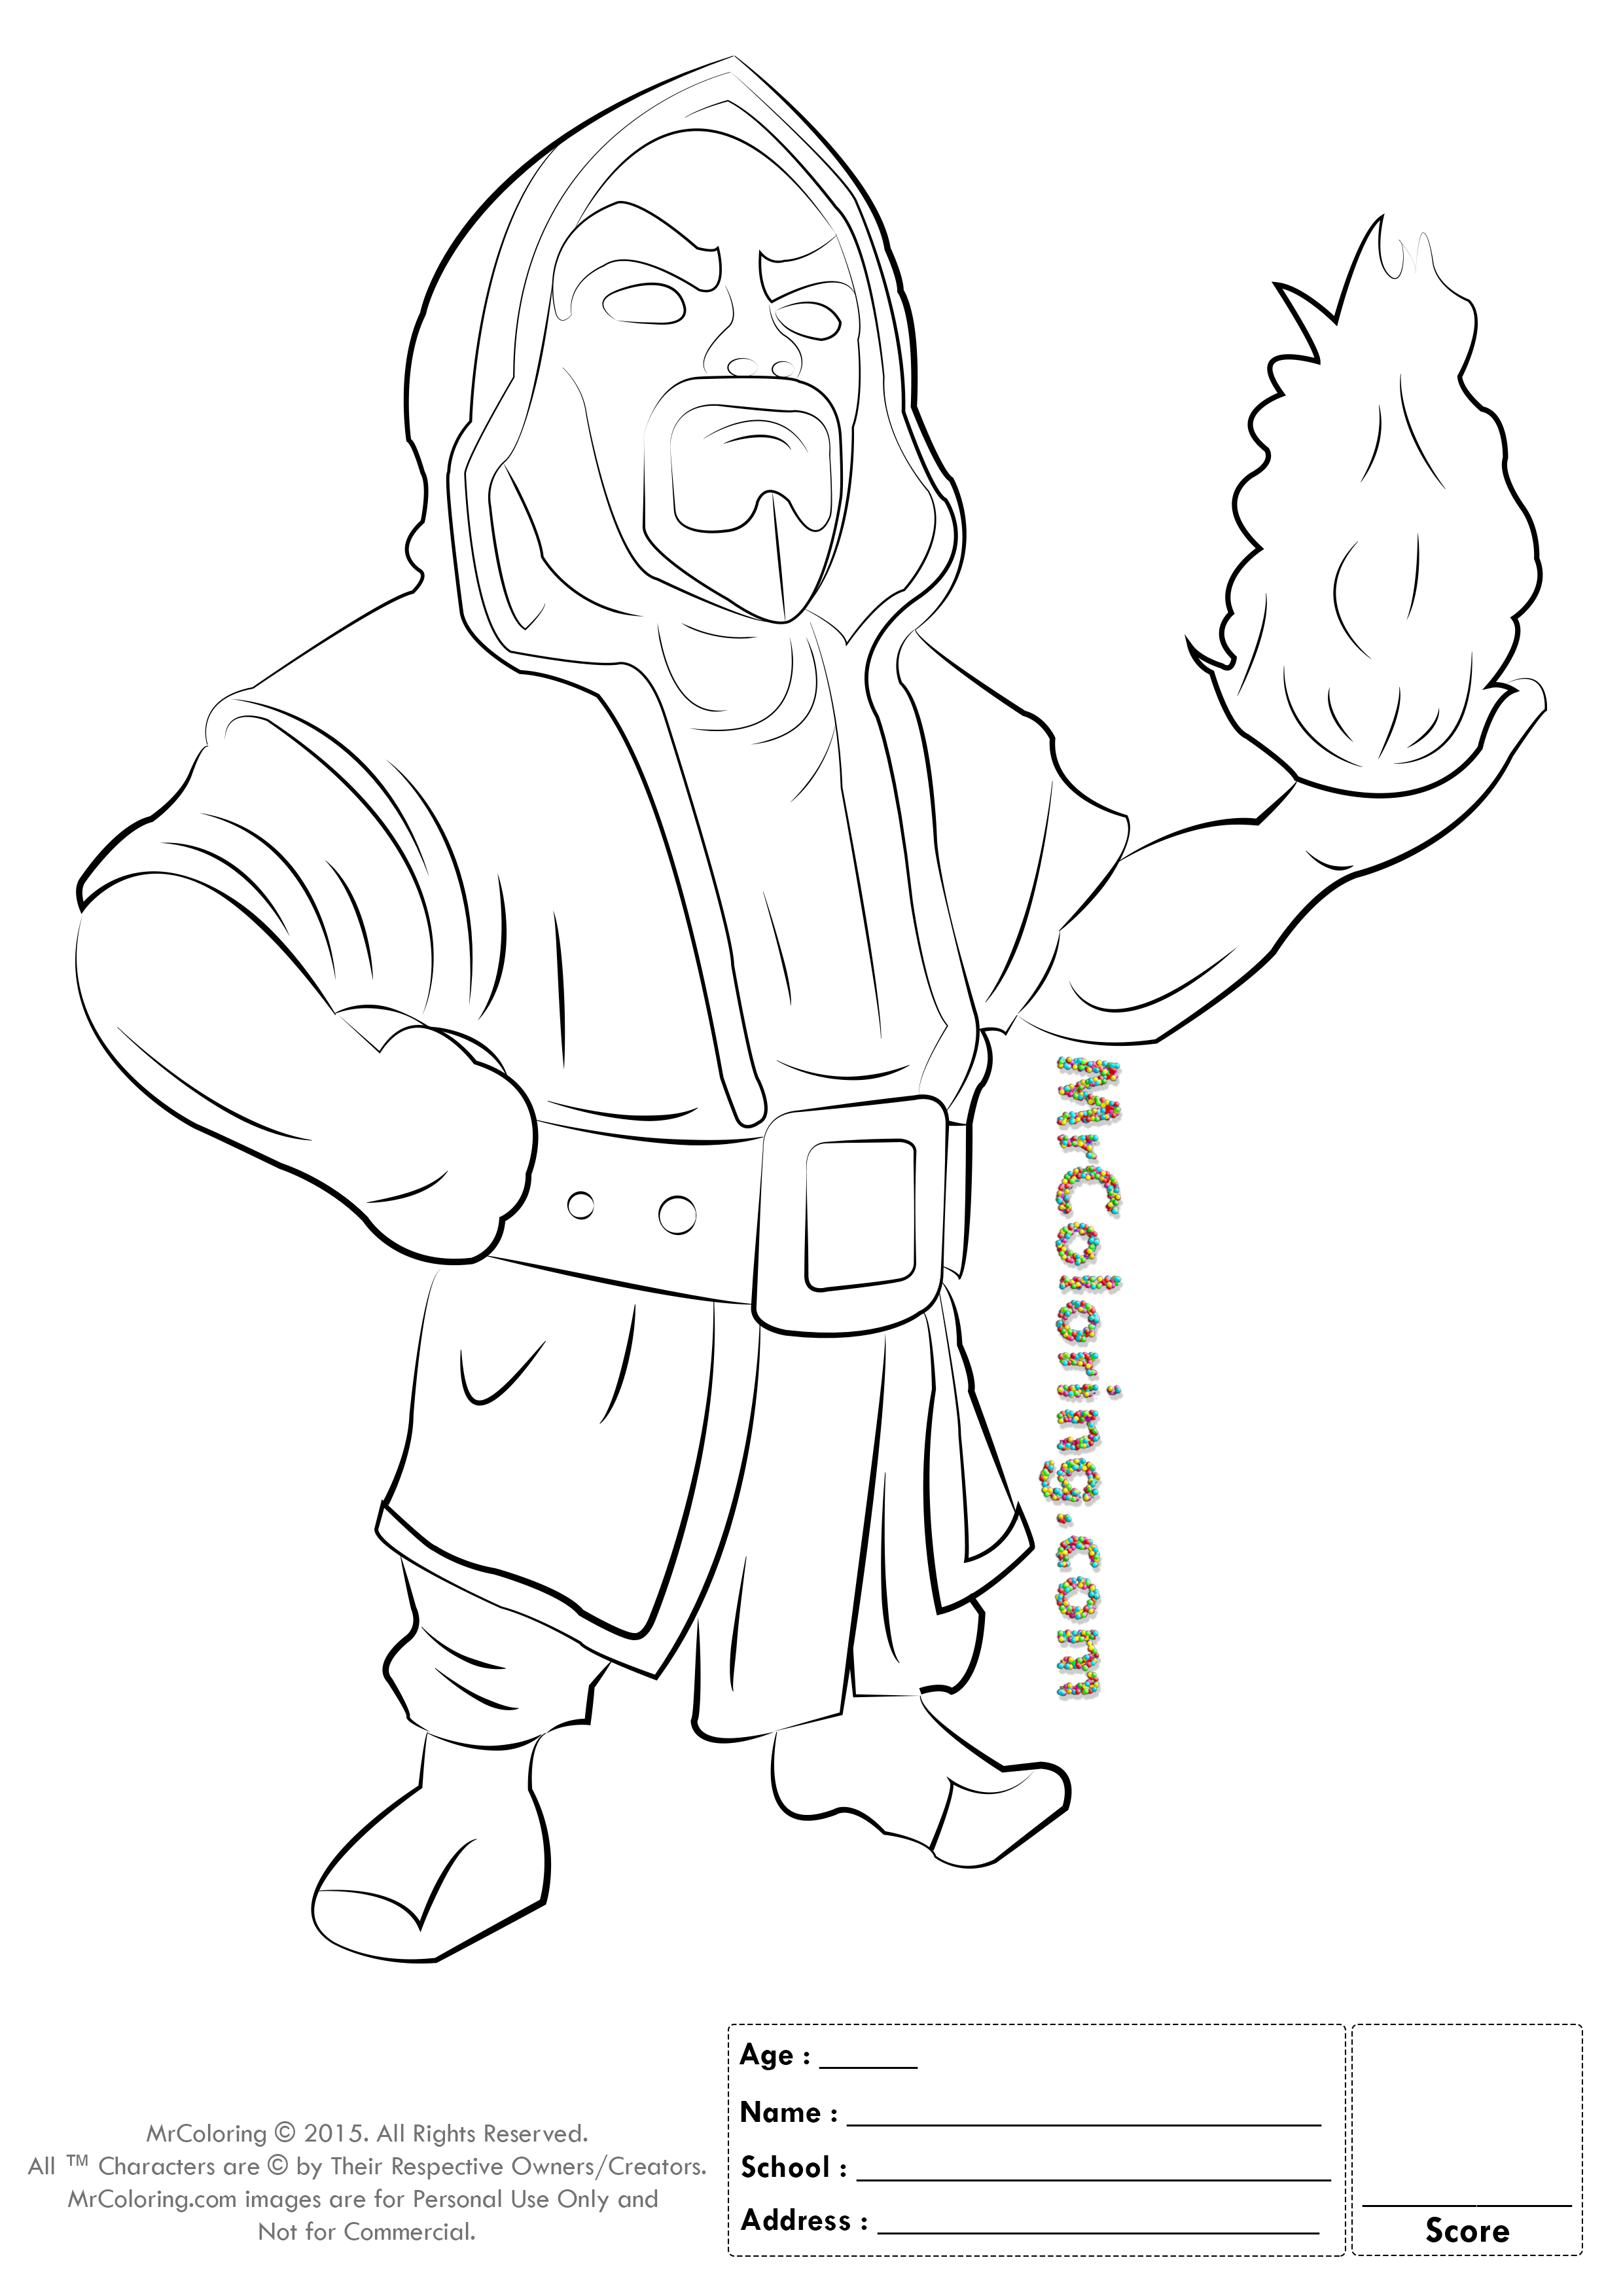 Free Printable Clash of Clans Wizard Coloring Pages - 1 | Mariela ...